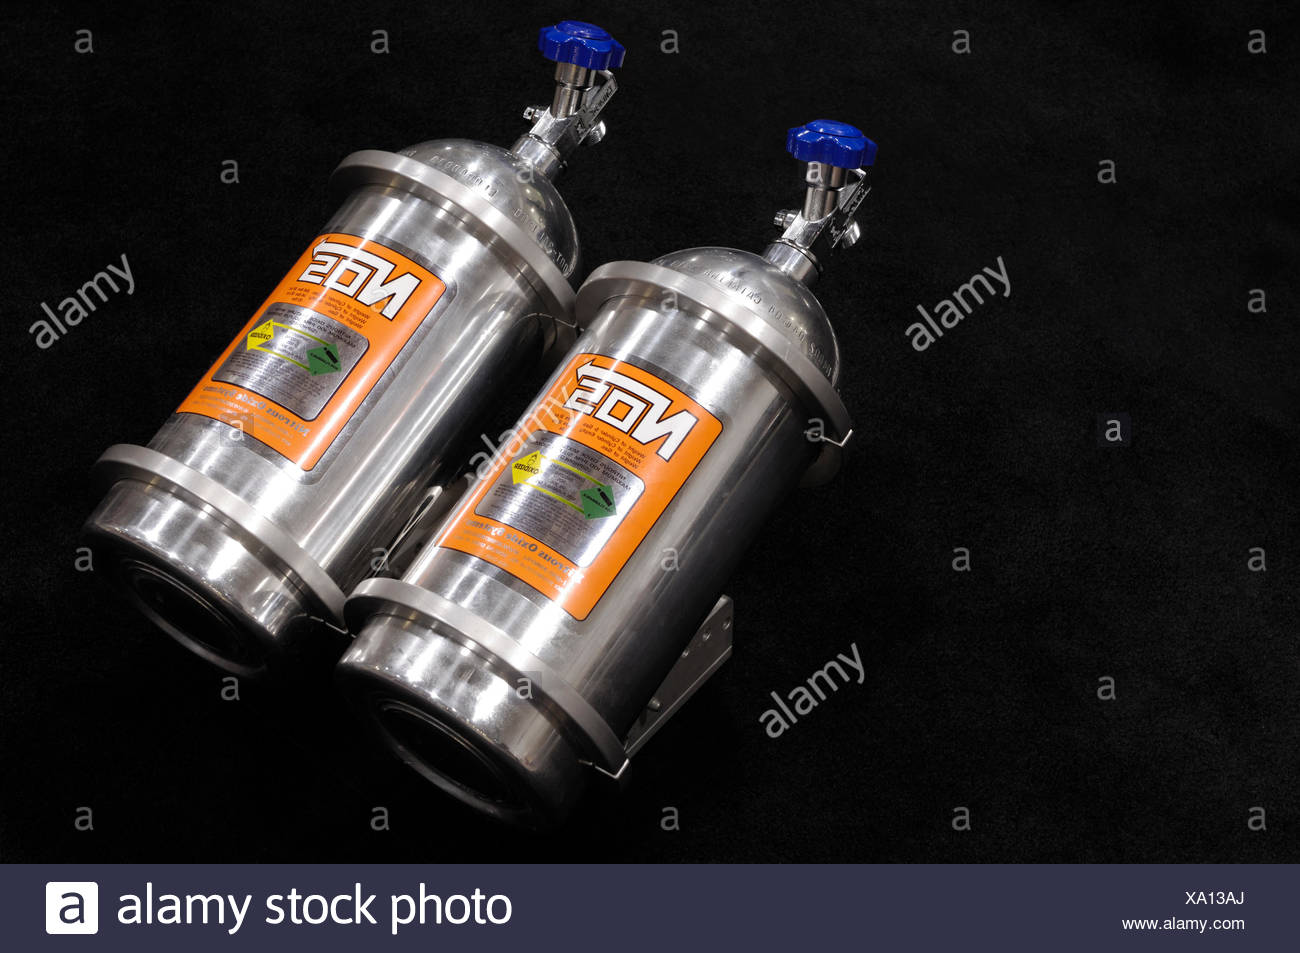 NOS Nitrous Oxide Systems Cylinders with compressed nitrous oxide gas for racing cars - Stock Image